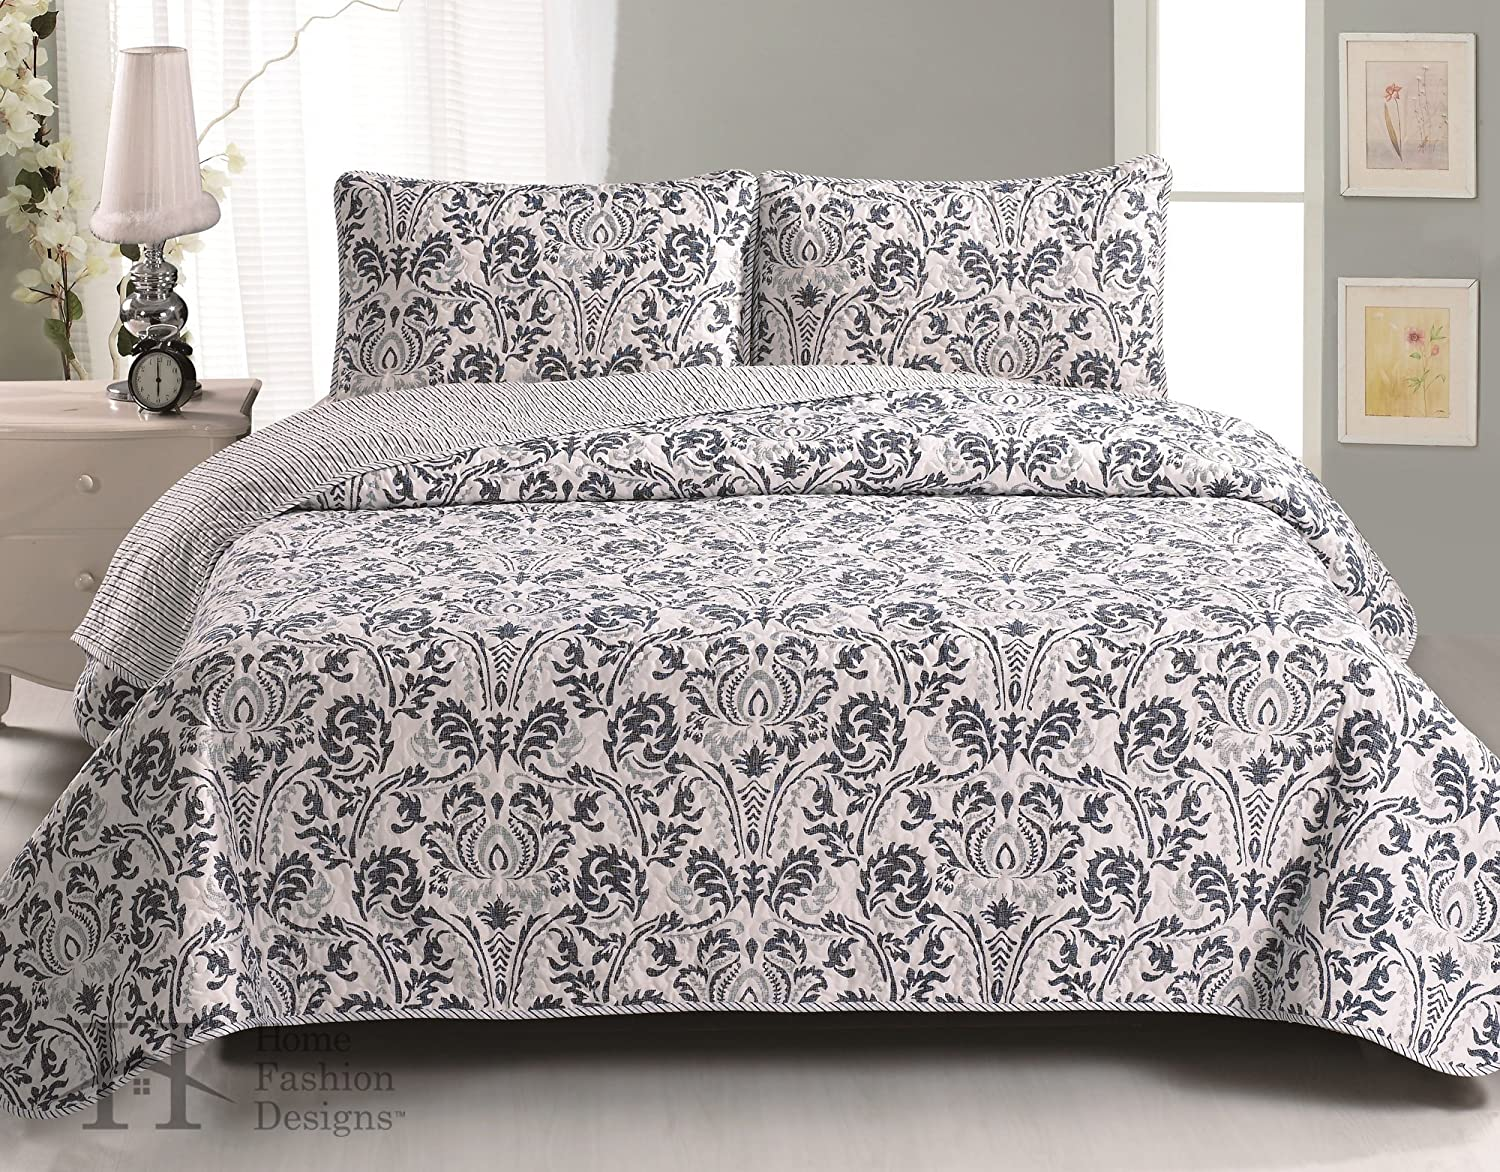 Amazon.com: Martinique Collection 3-Piece Luxury Quilt Set with ... : blue gray quilt - Adamdwight.com